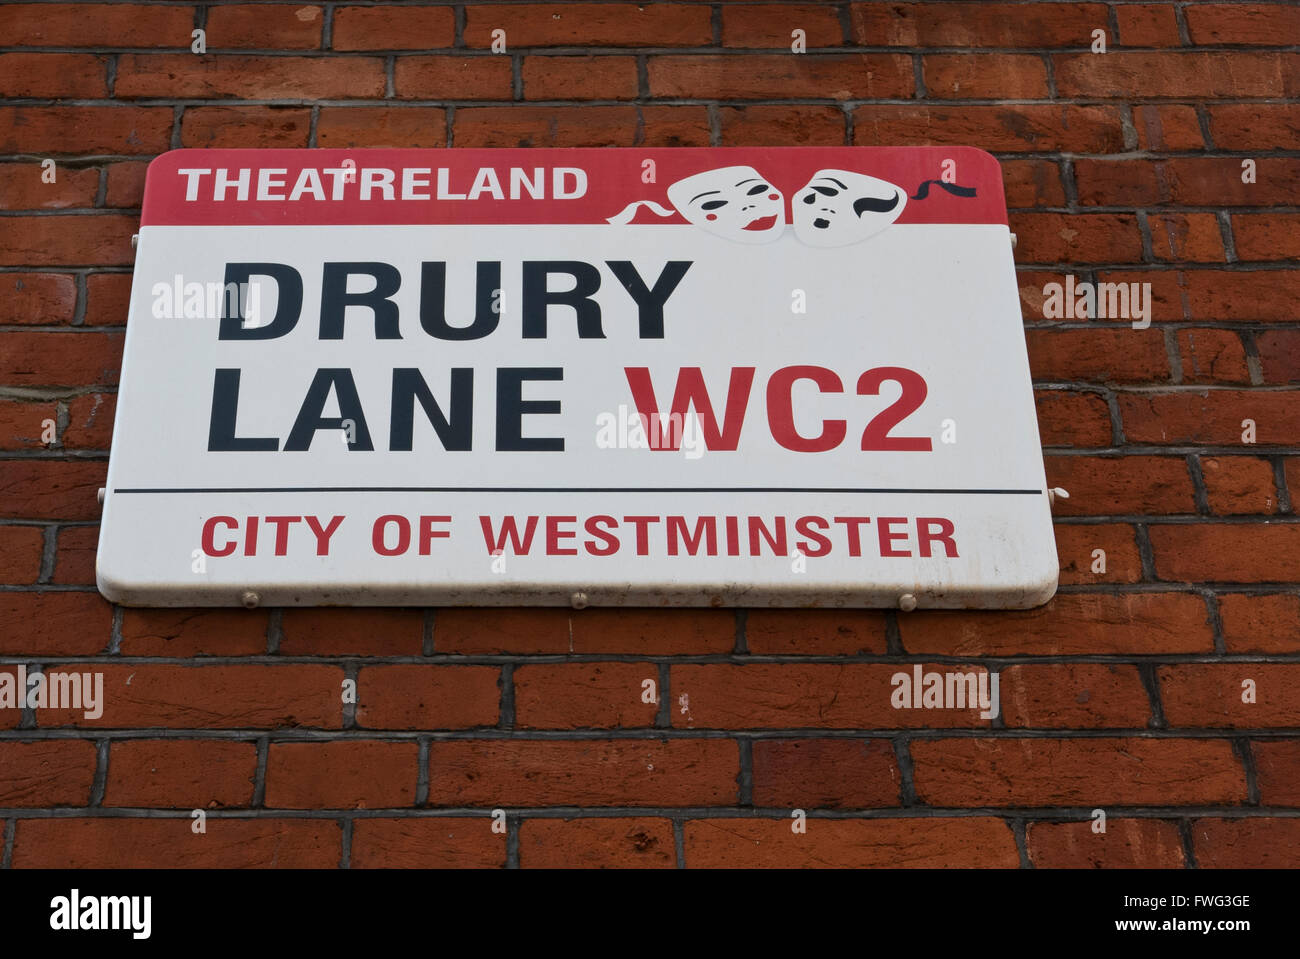 Drury Lane signage in the Theatreland area in London, United Kingdom. - Stock Image